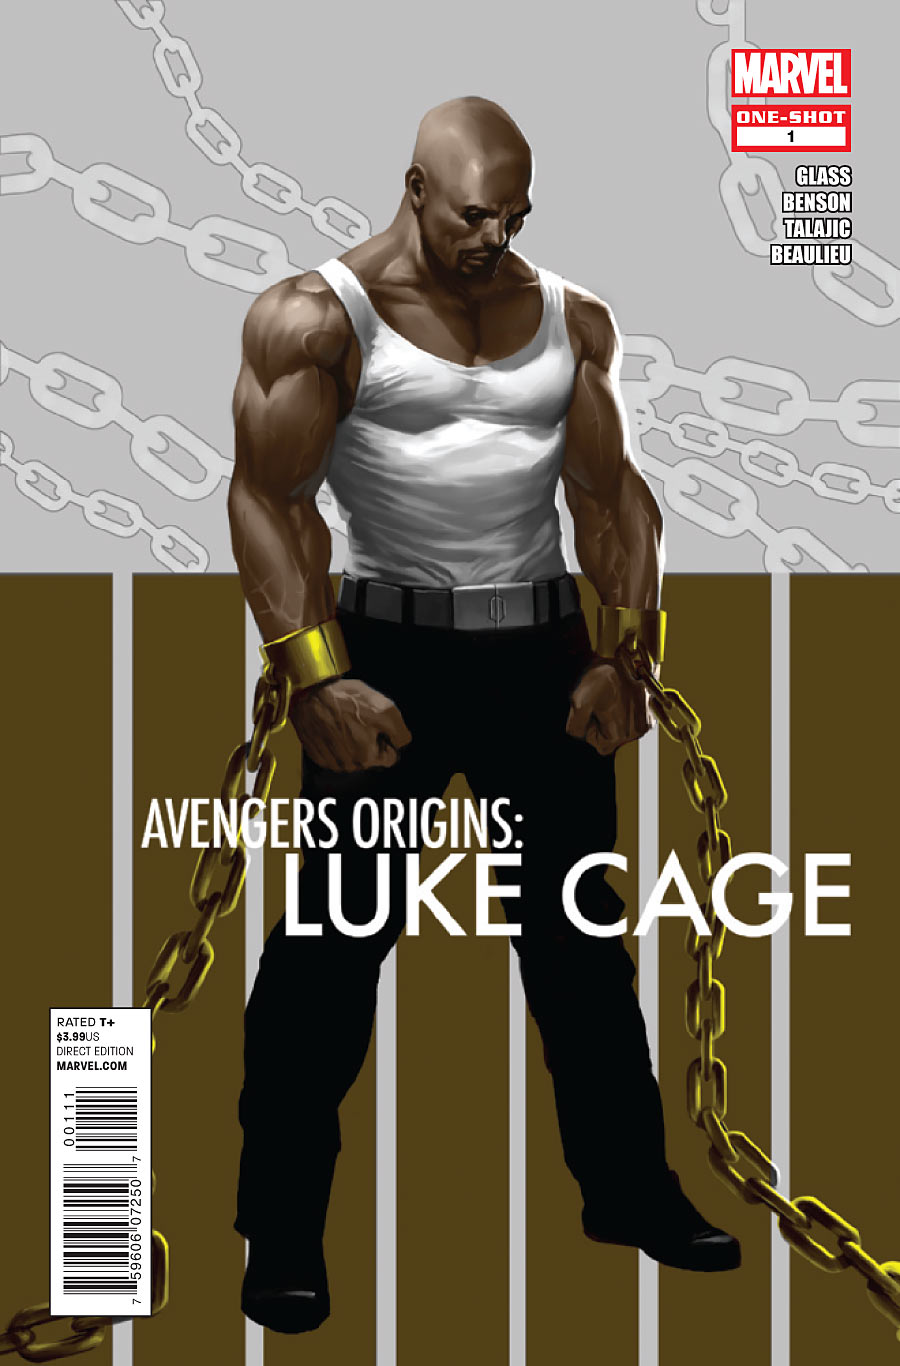 Avengers Origins: Luke Cage Vol 1 1